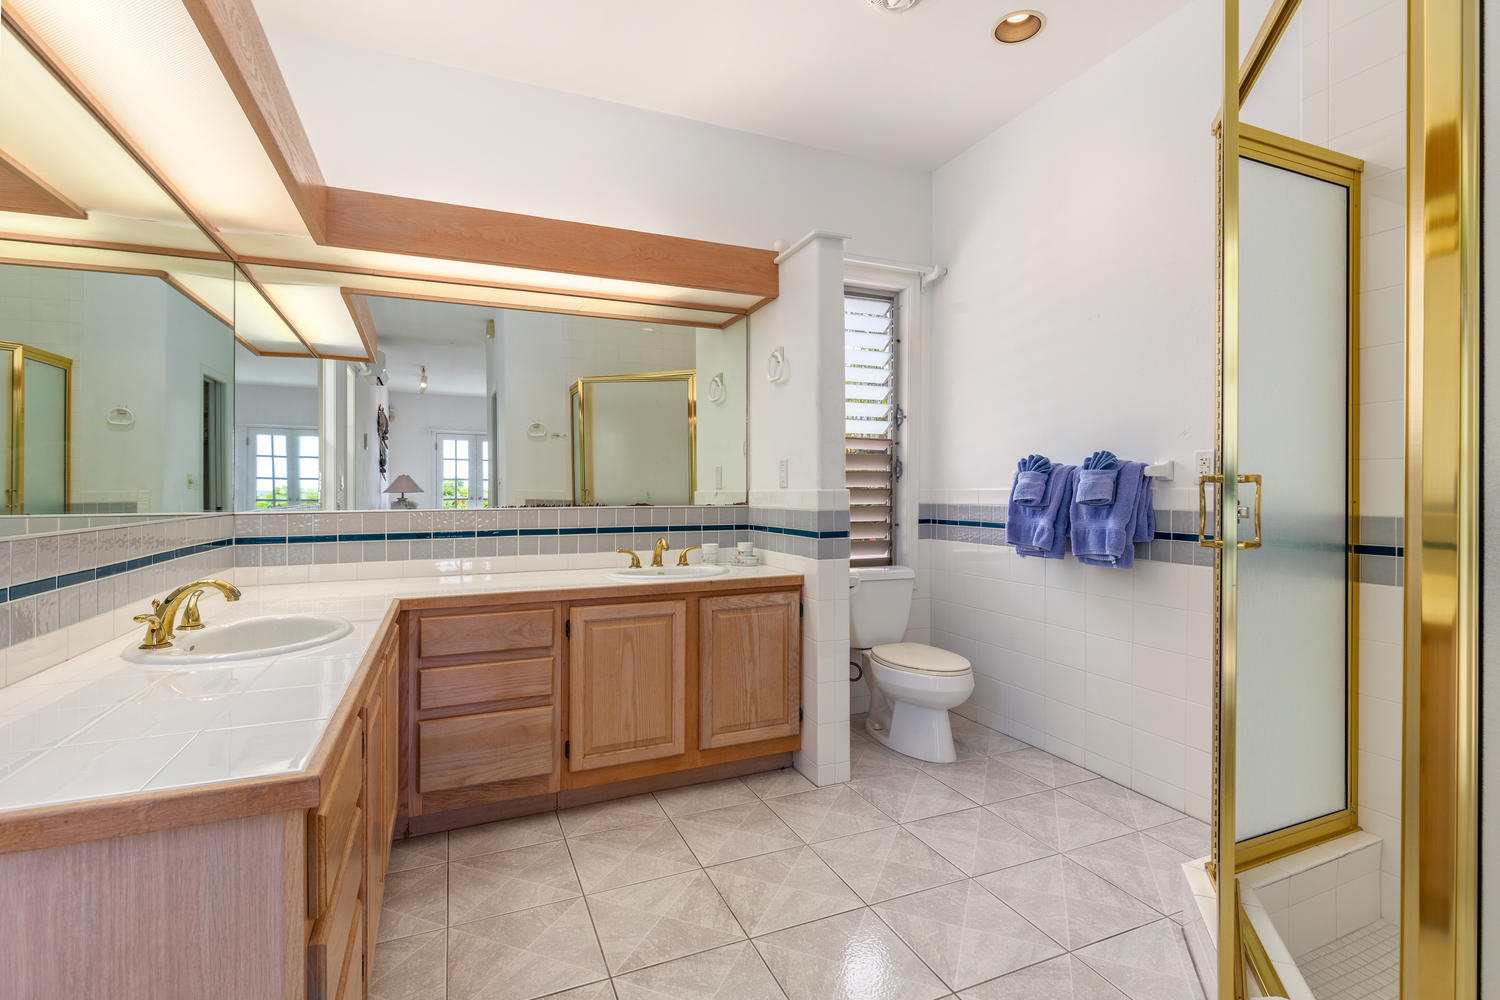 776556  776560 Alii Drive-large-040-31-Bathroom-1500x1000-72dpi.jpg